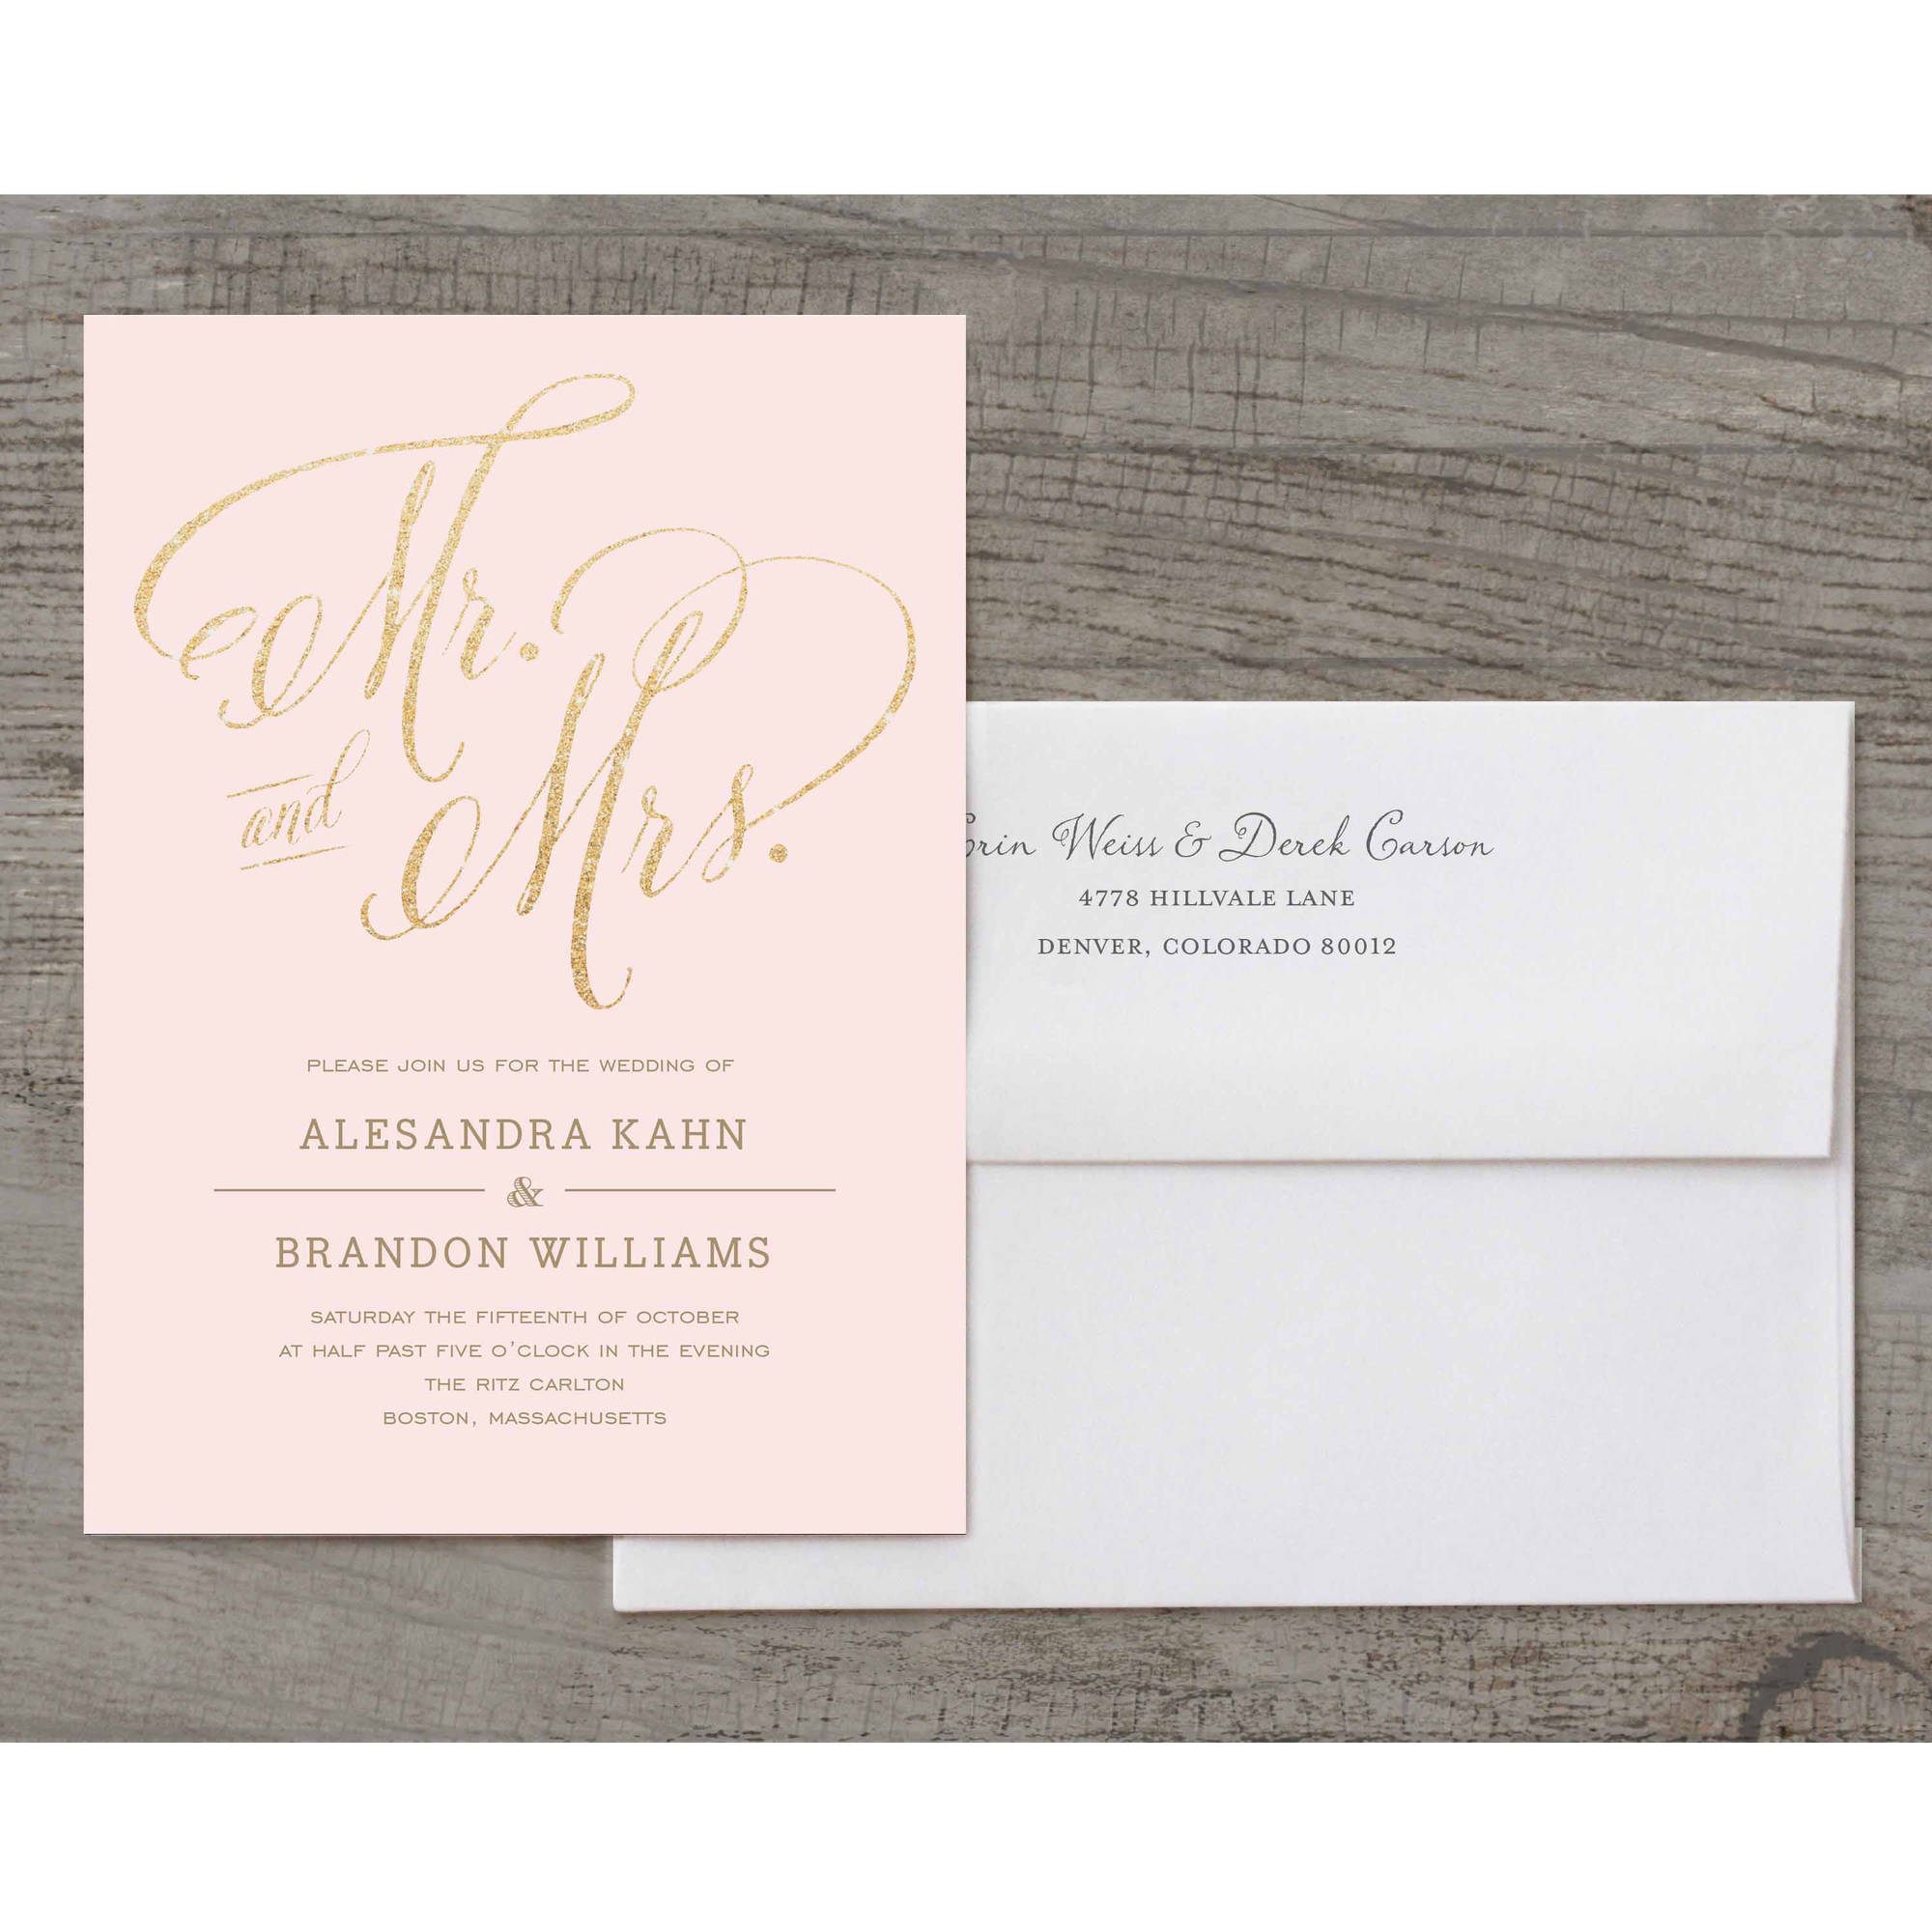 Mr and Mrs Deluxe Wedding Invitation